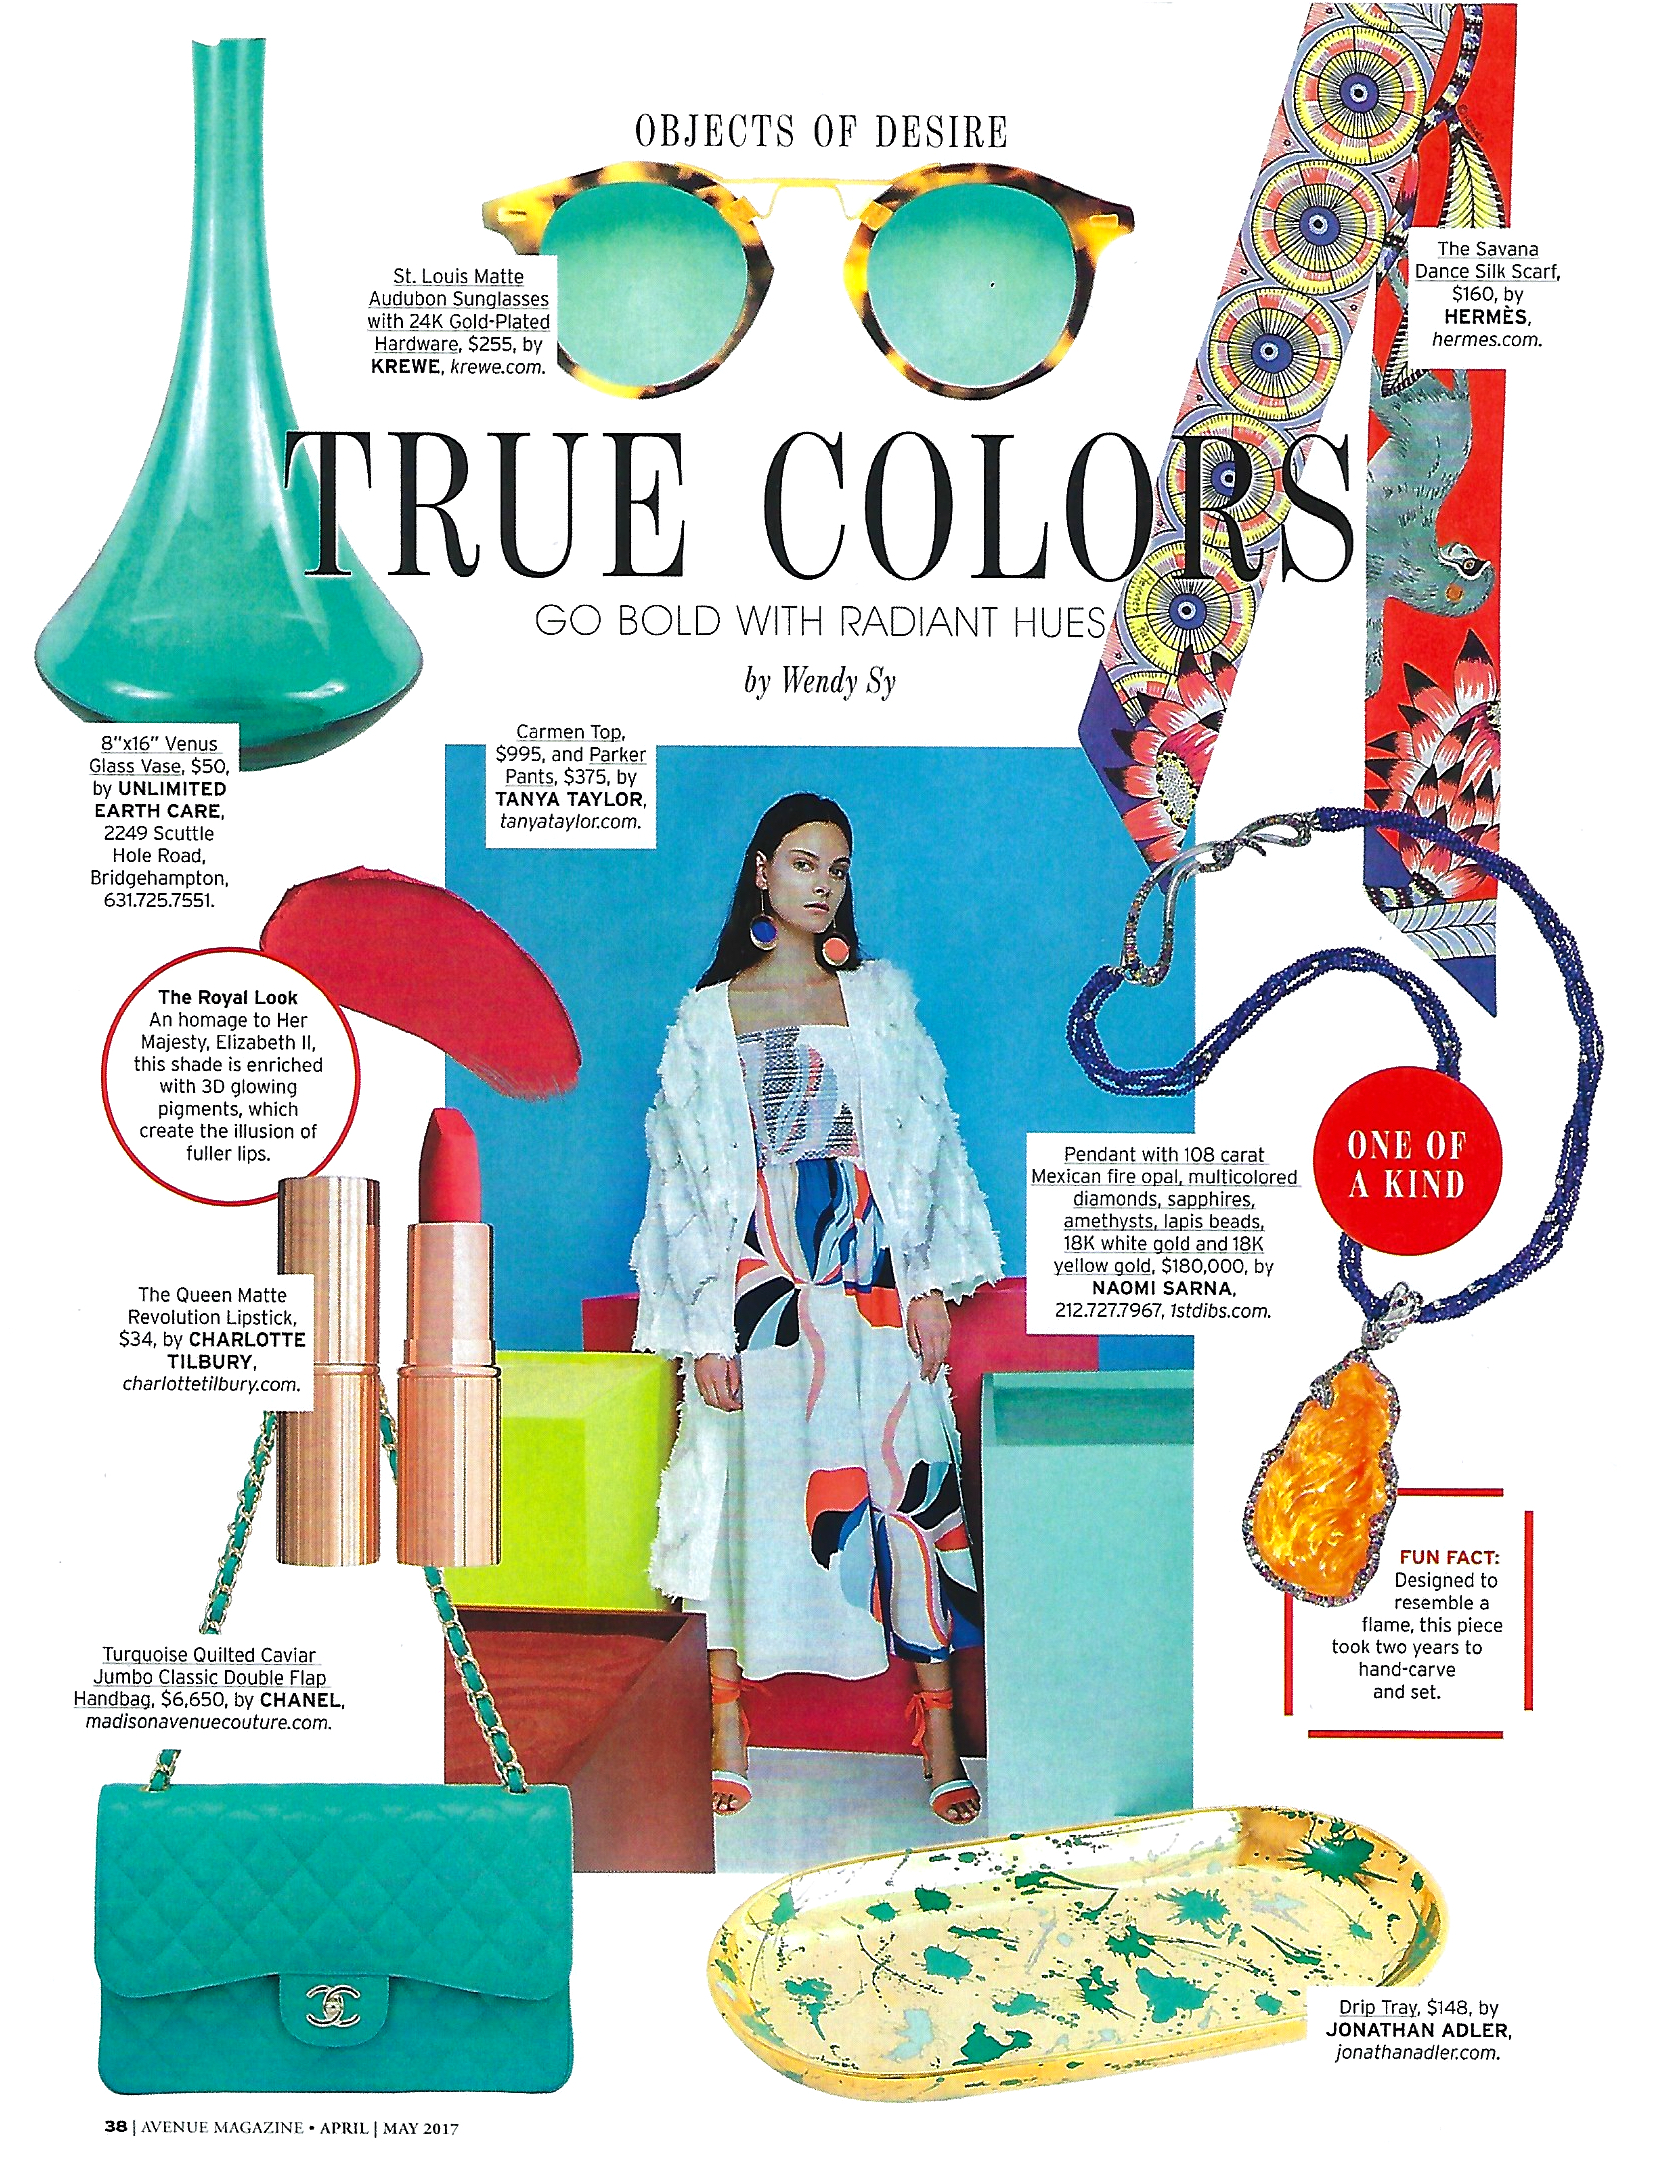 Avenue Magazine - True Colors_May 2017.jpg